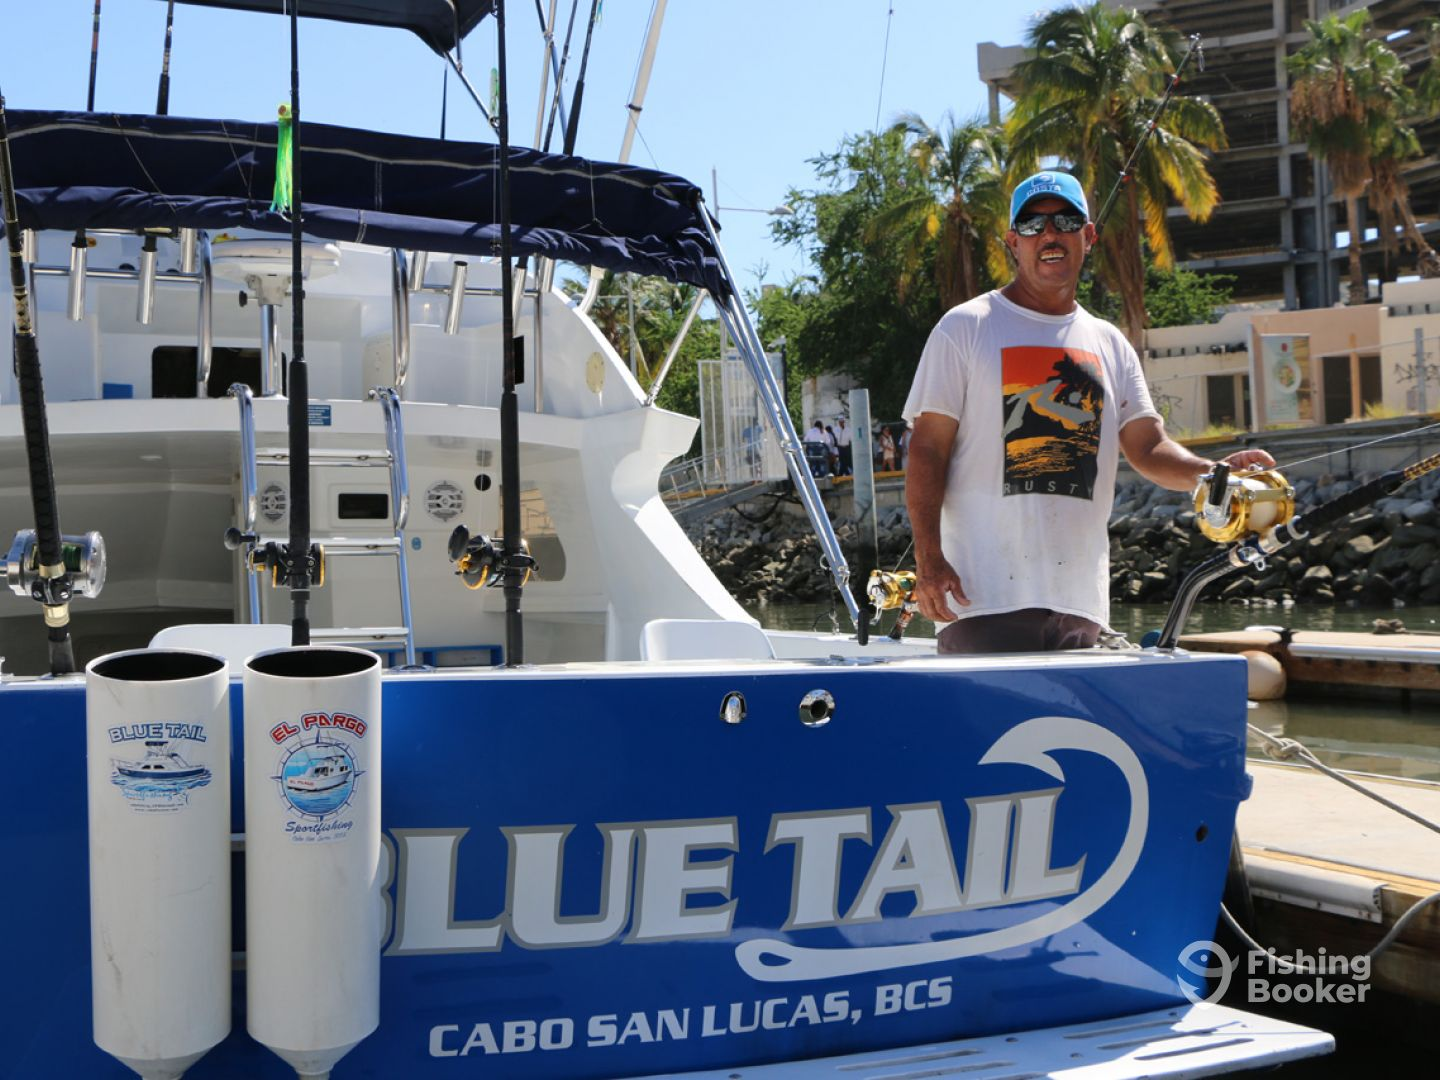 Cabo Sportfishing Crew – Blue Tail